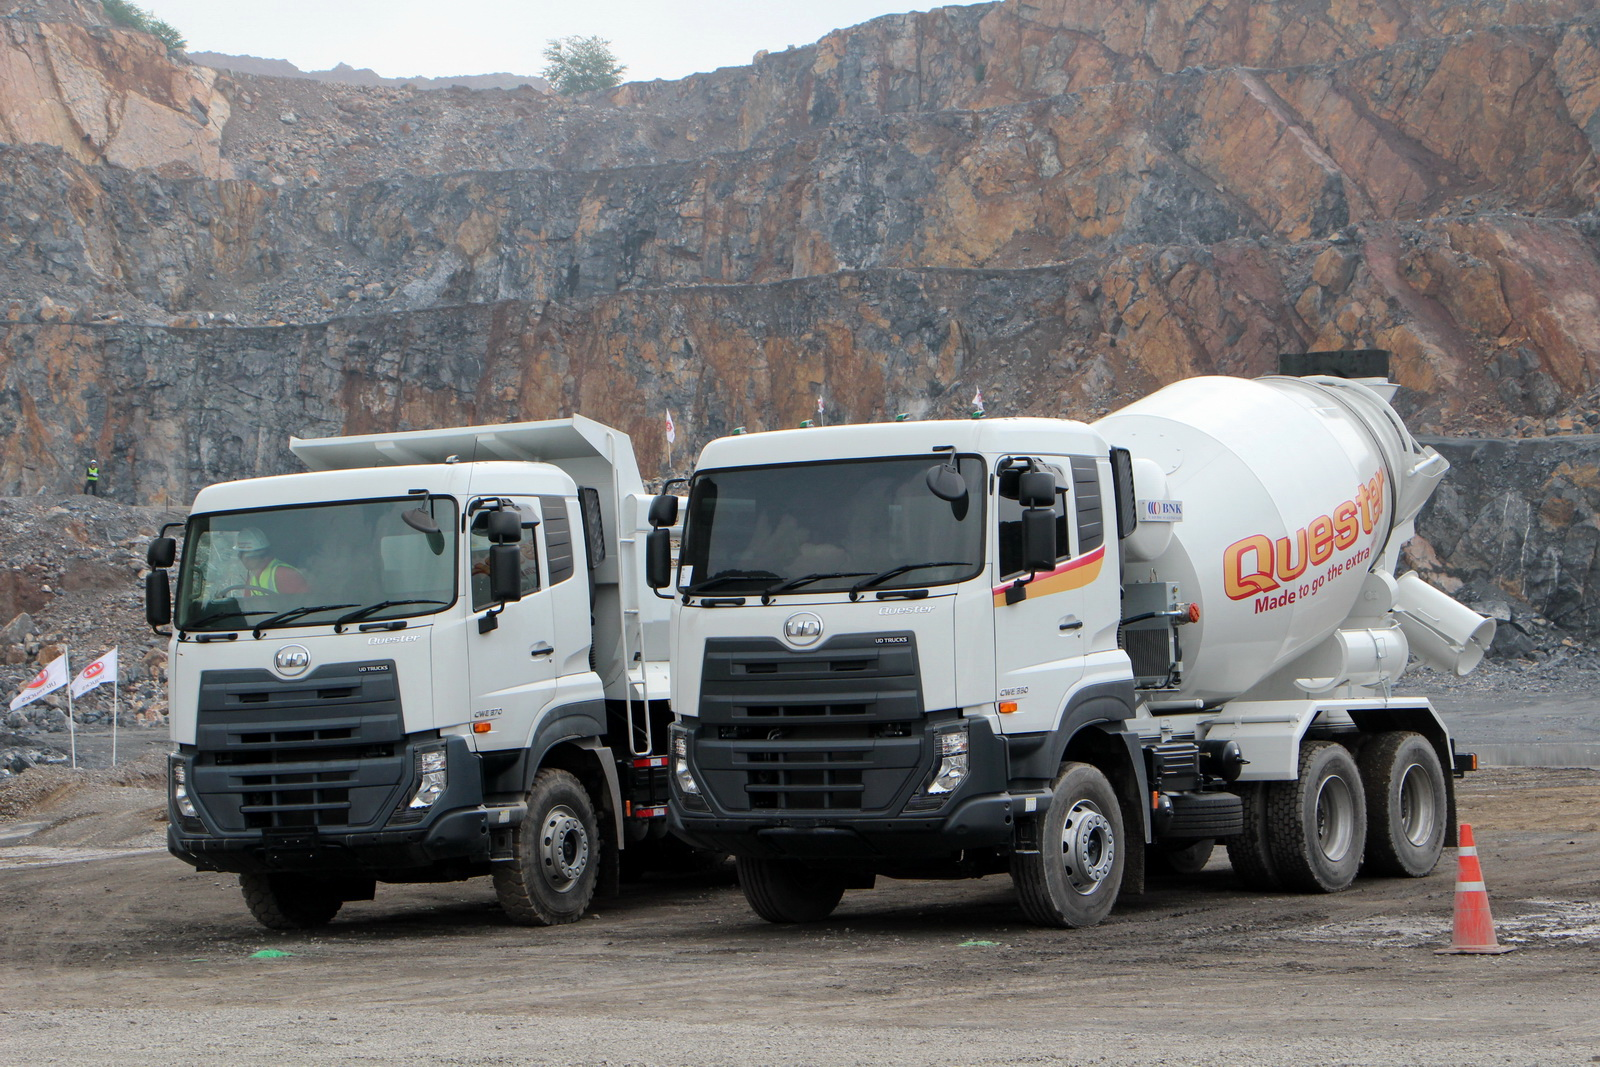 ud_truck_quester_01